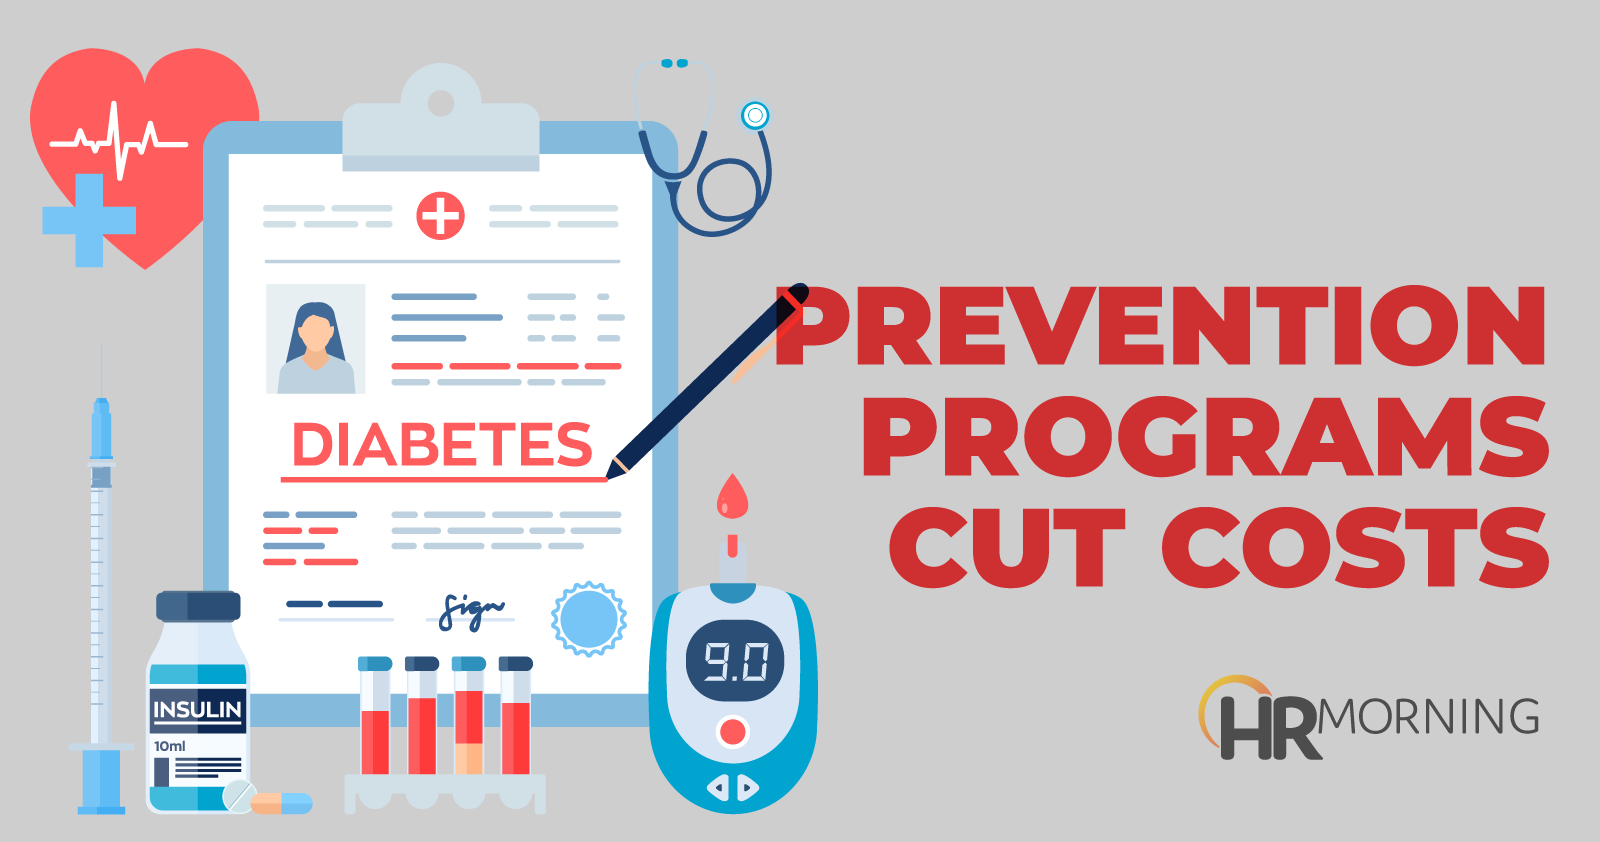 prevention programs cut costs